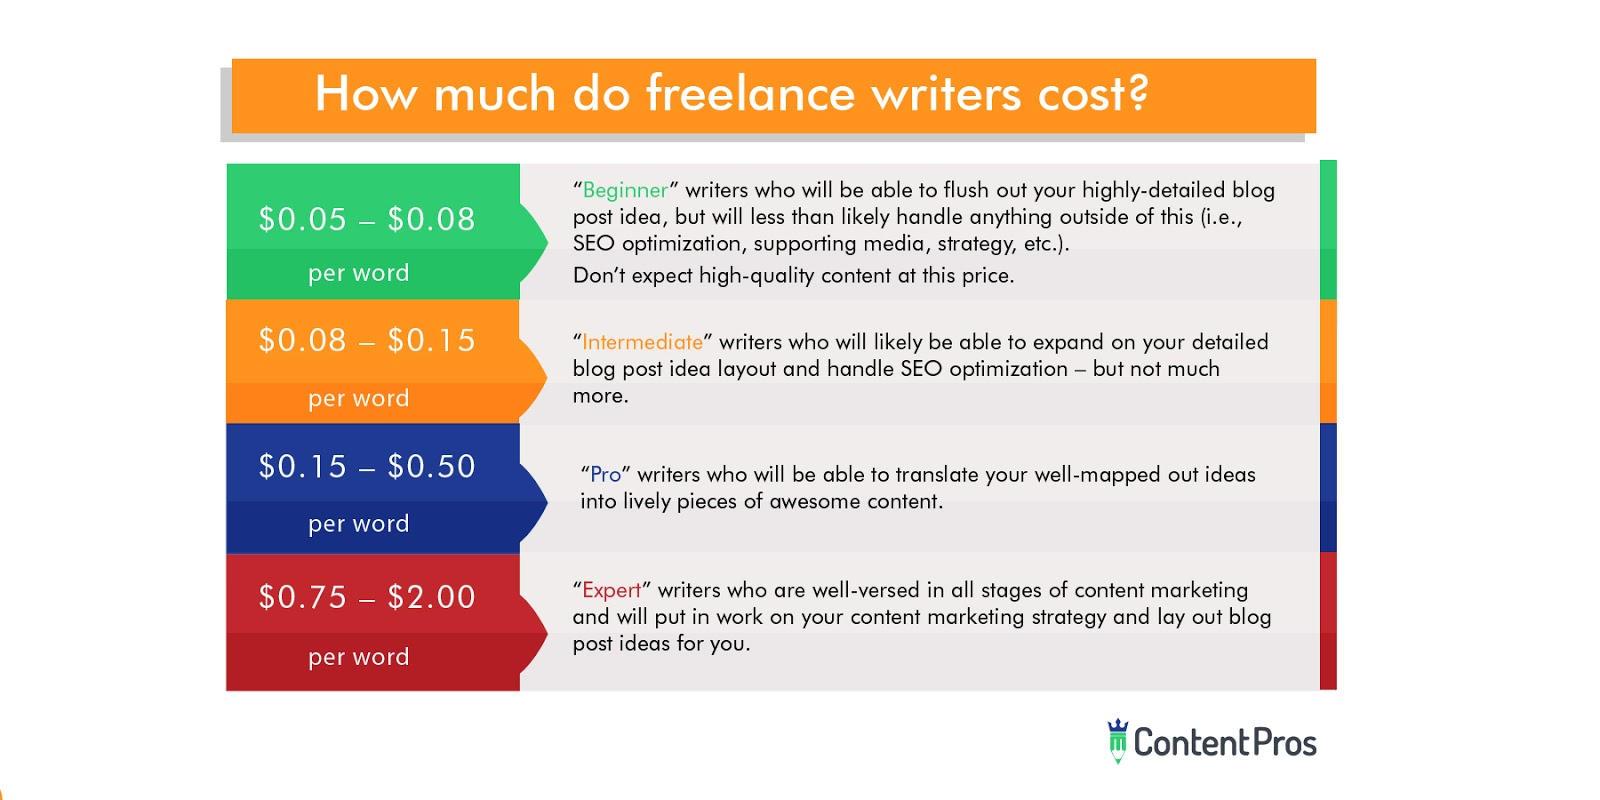 How much do freelance writers cost?